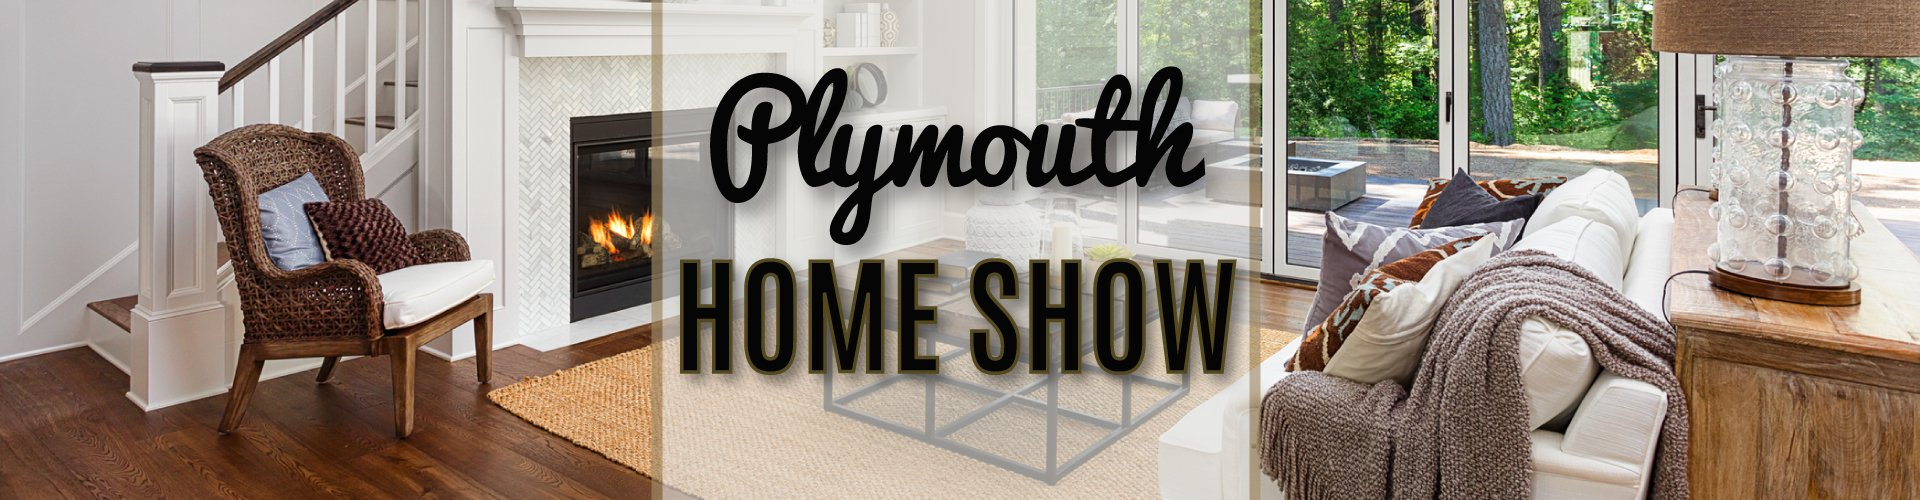 Plymouth Home Show Expo 2018